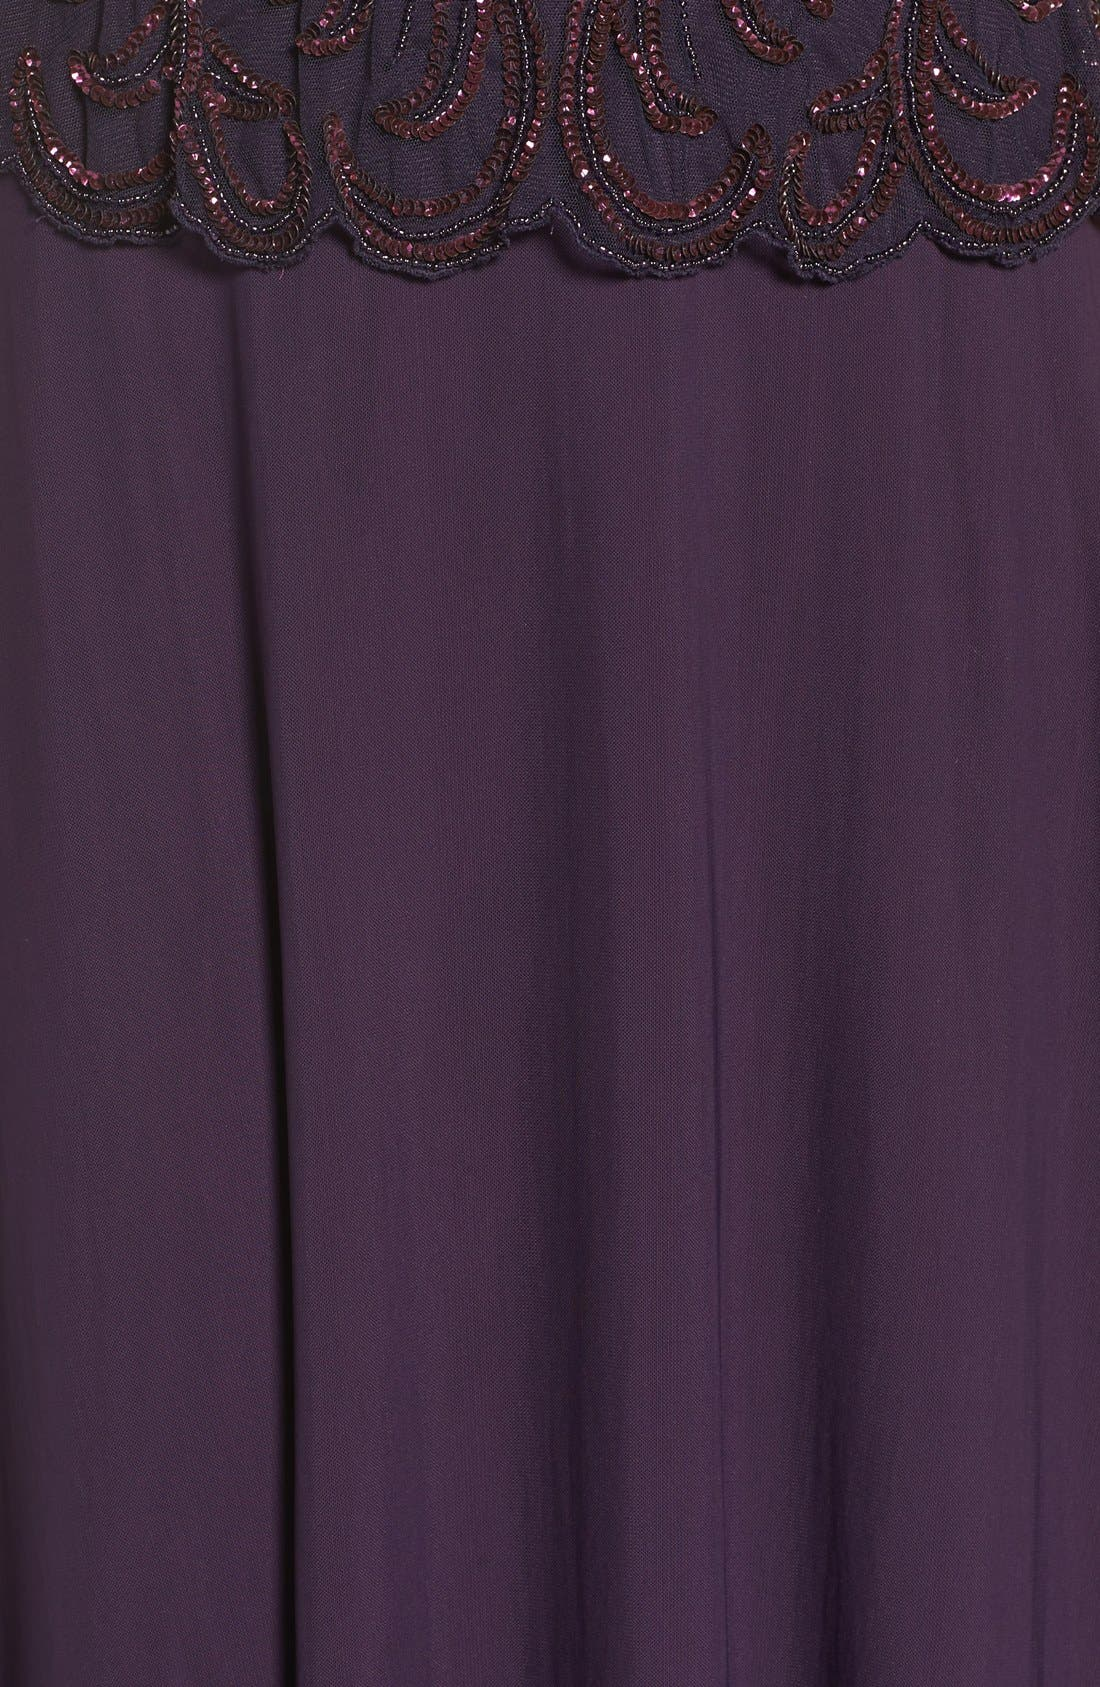 Embellished Mesh Popover Gown,                             Alternate thumbnail 5, color,                             Plum